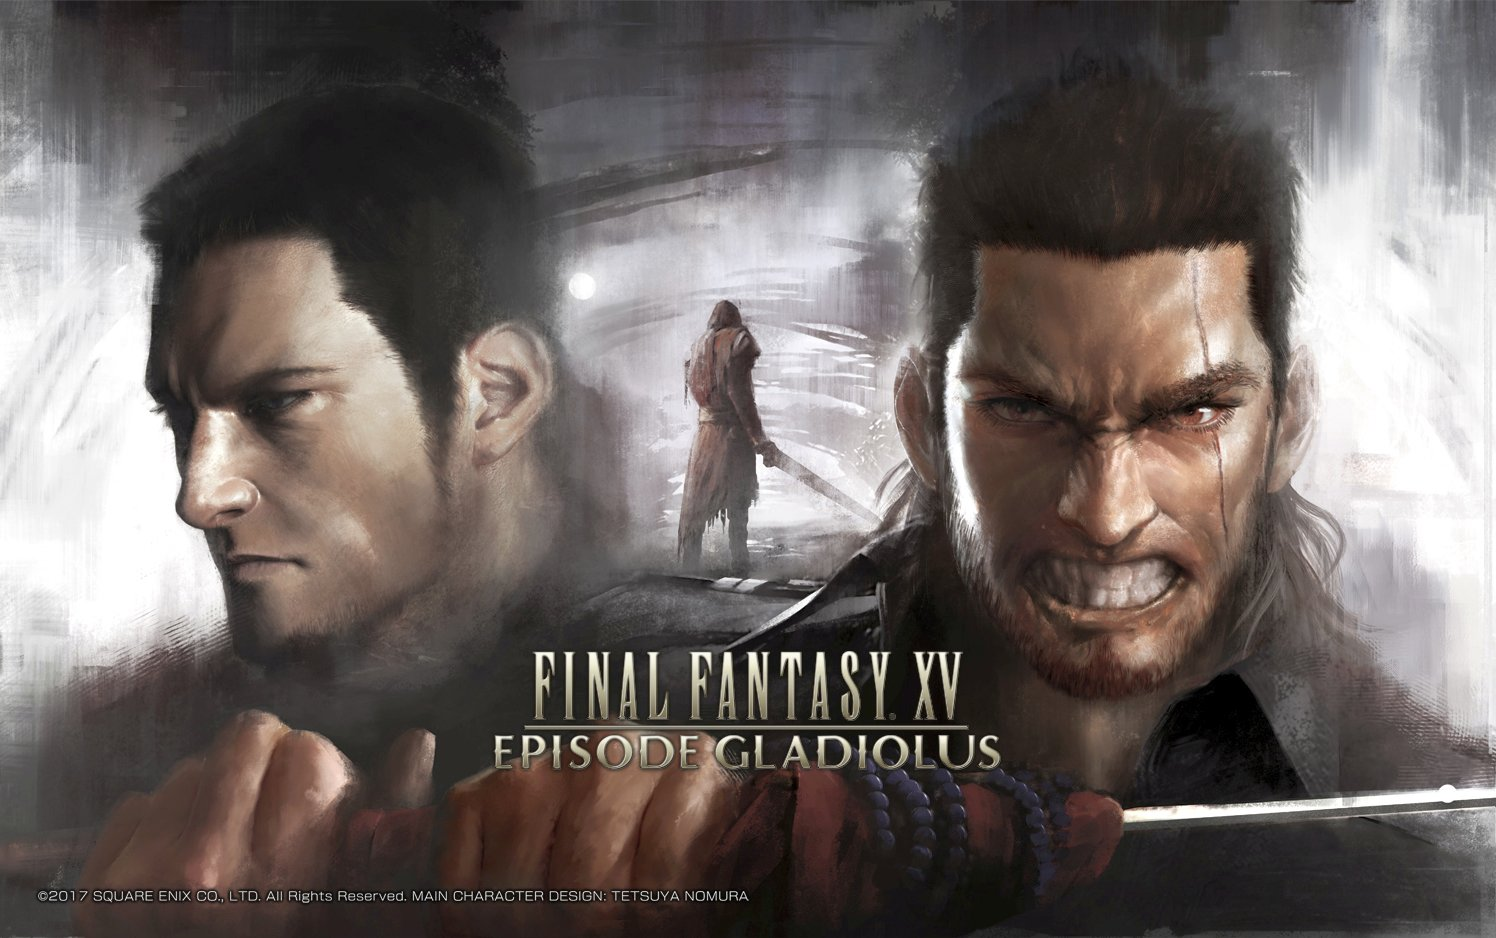 Final Fantasy XV Episode Gladiolus Trailer